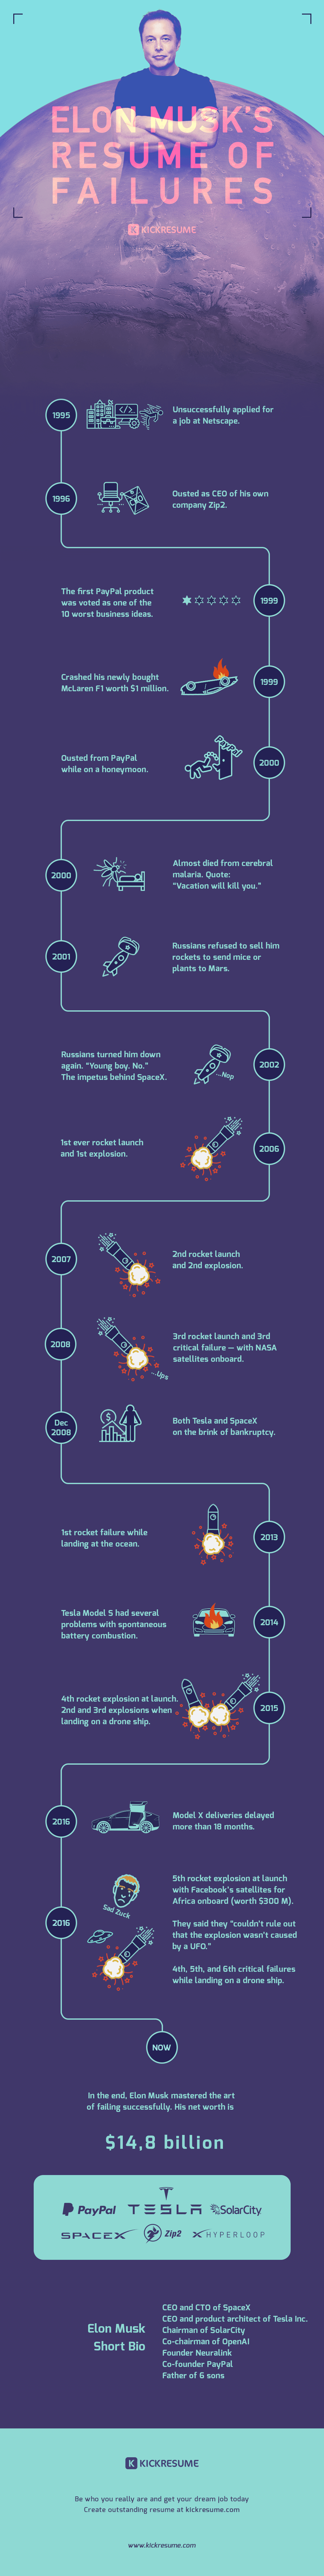 Elon Musk's Resume of Failures infographic